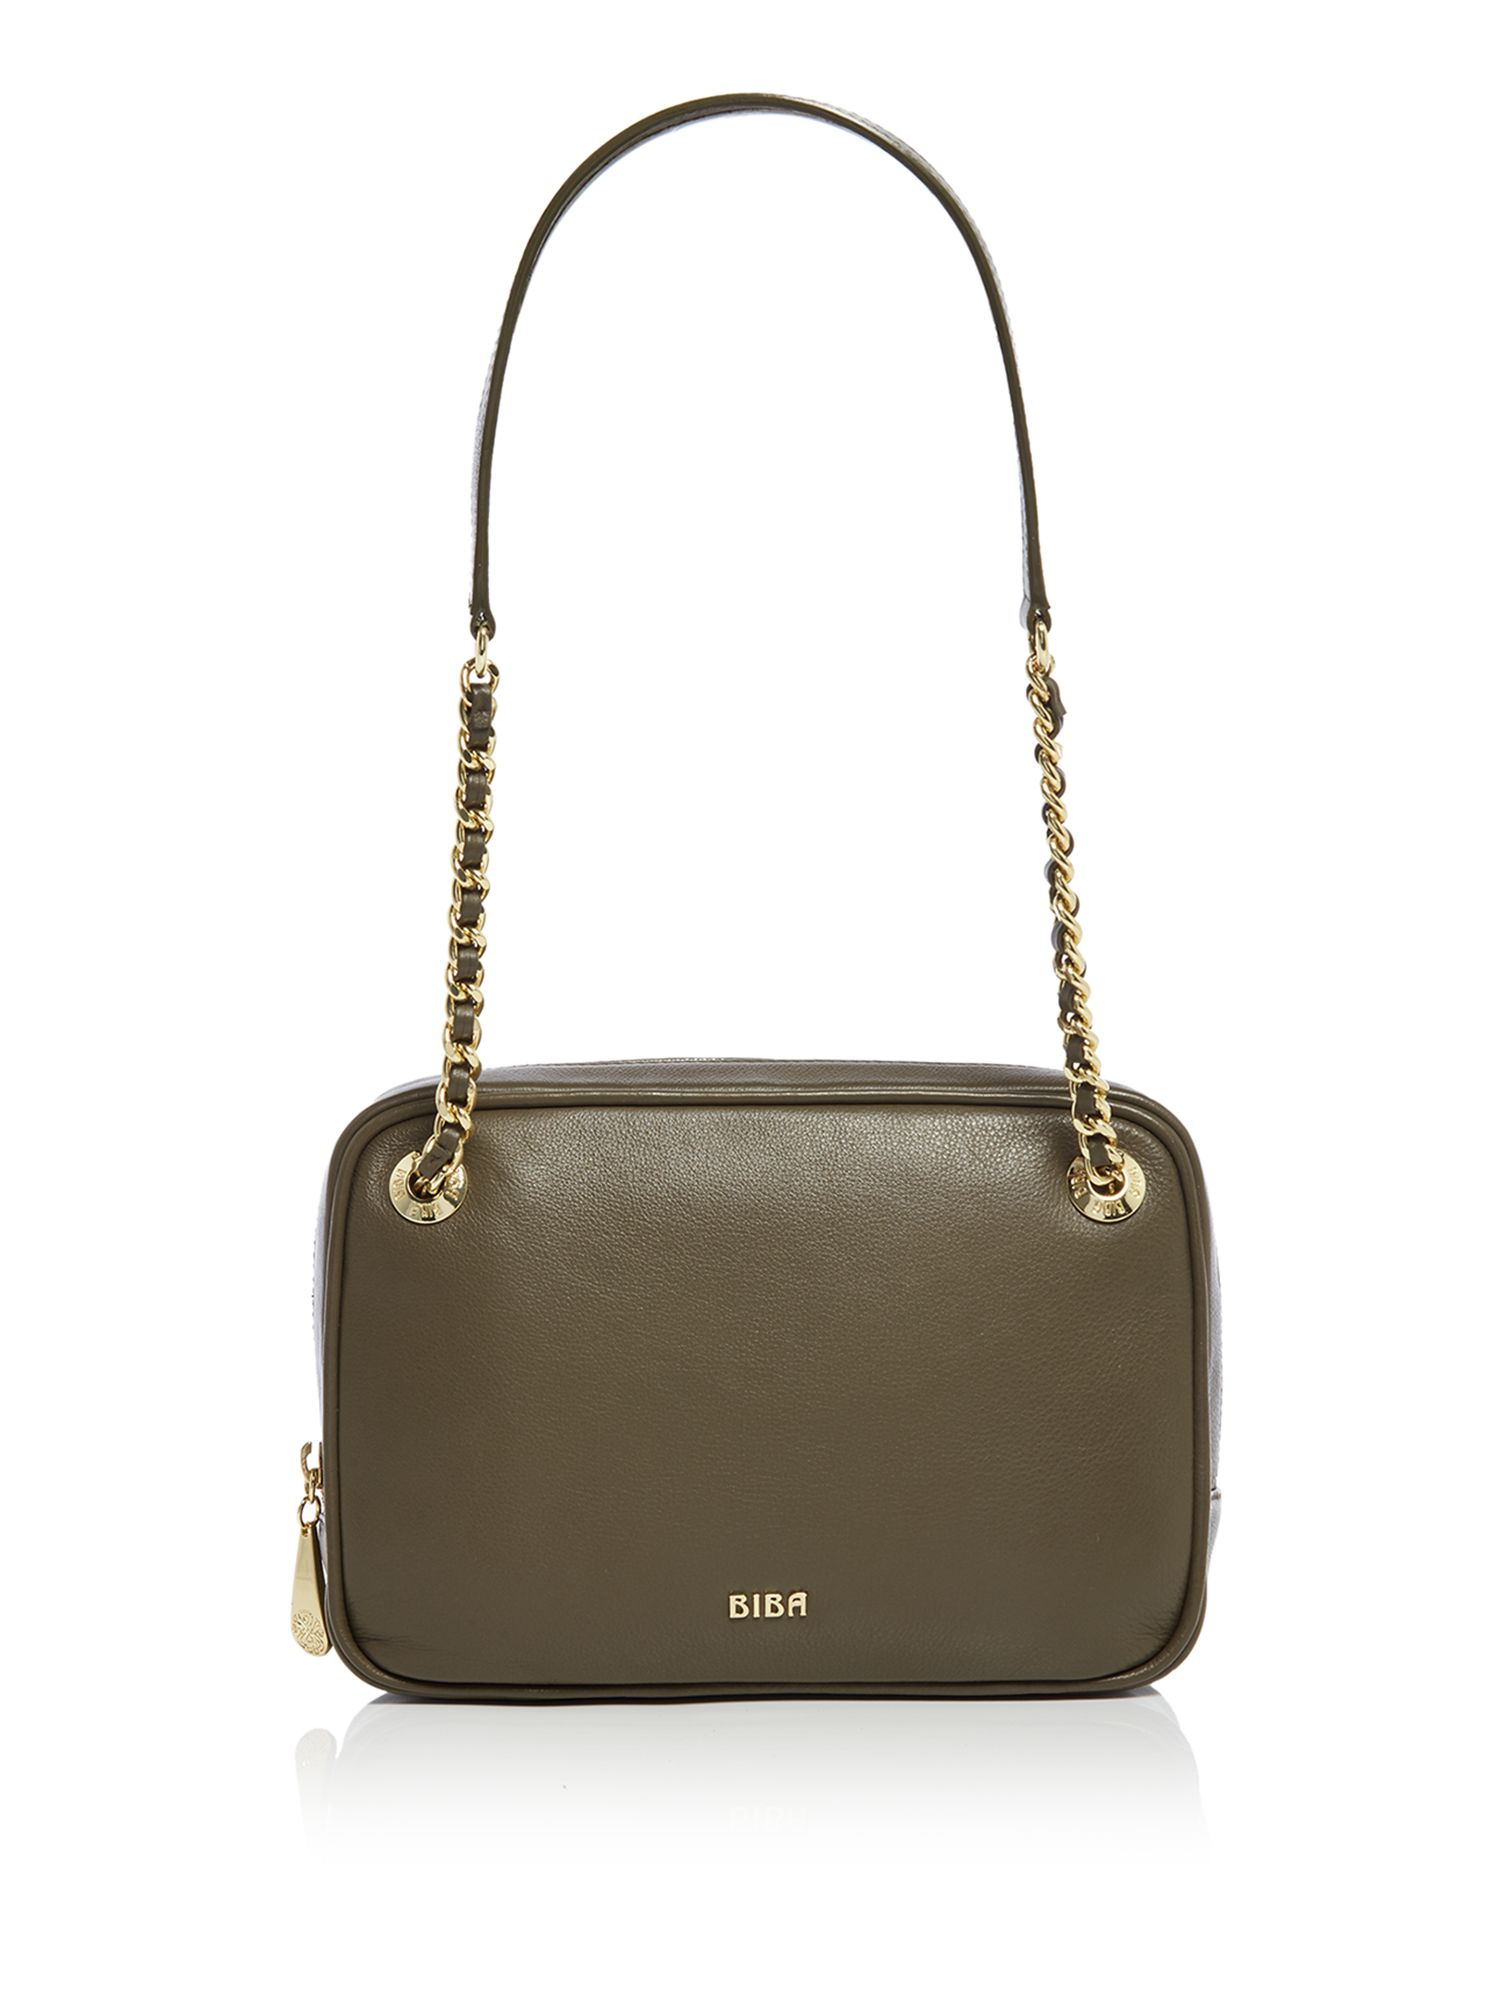 Biba Angela Chain Shoulder Leather Bag, Khaki